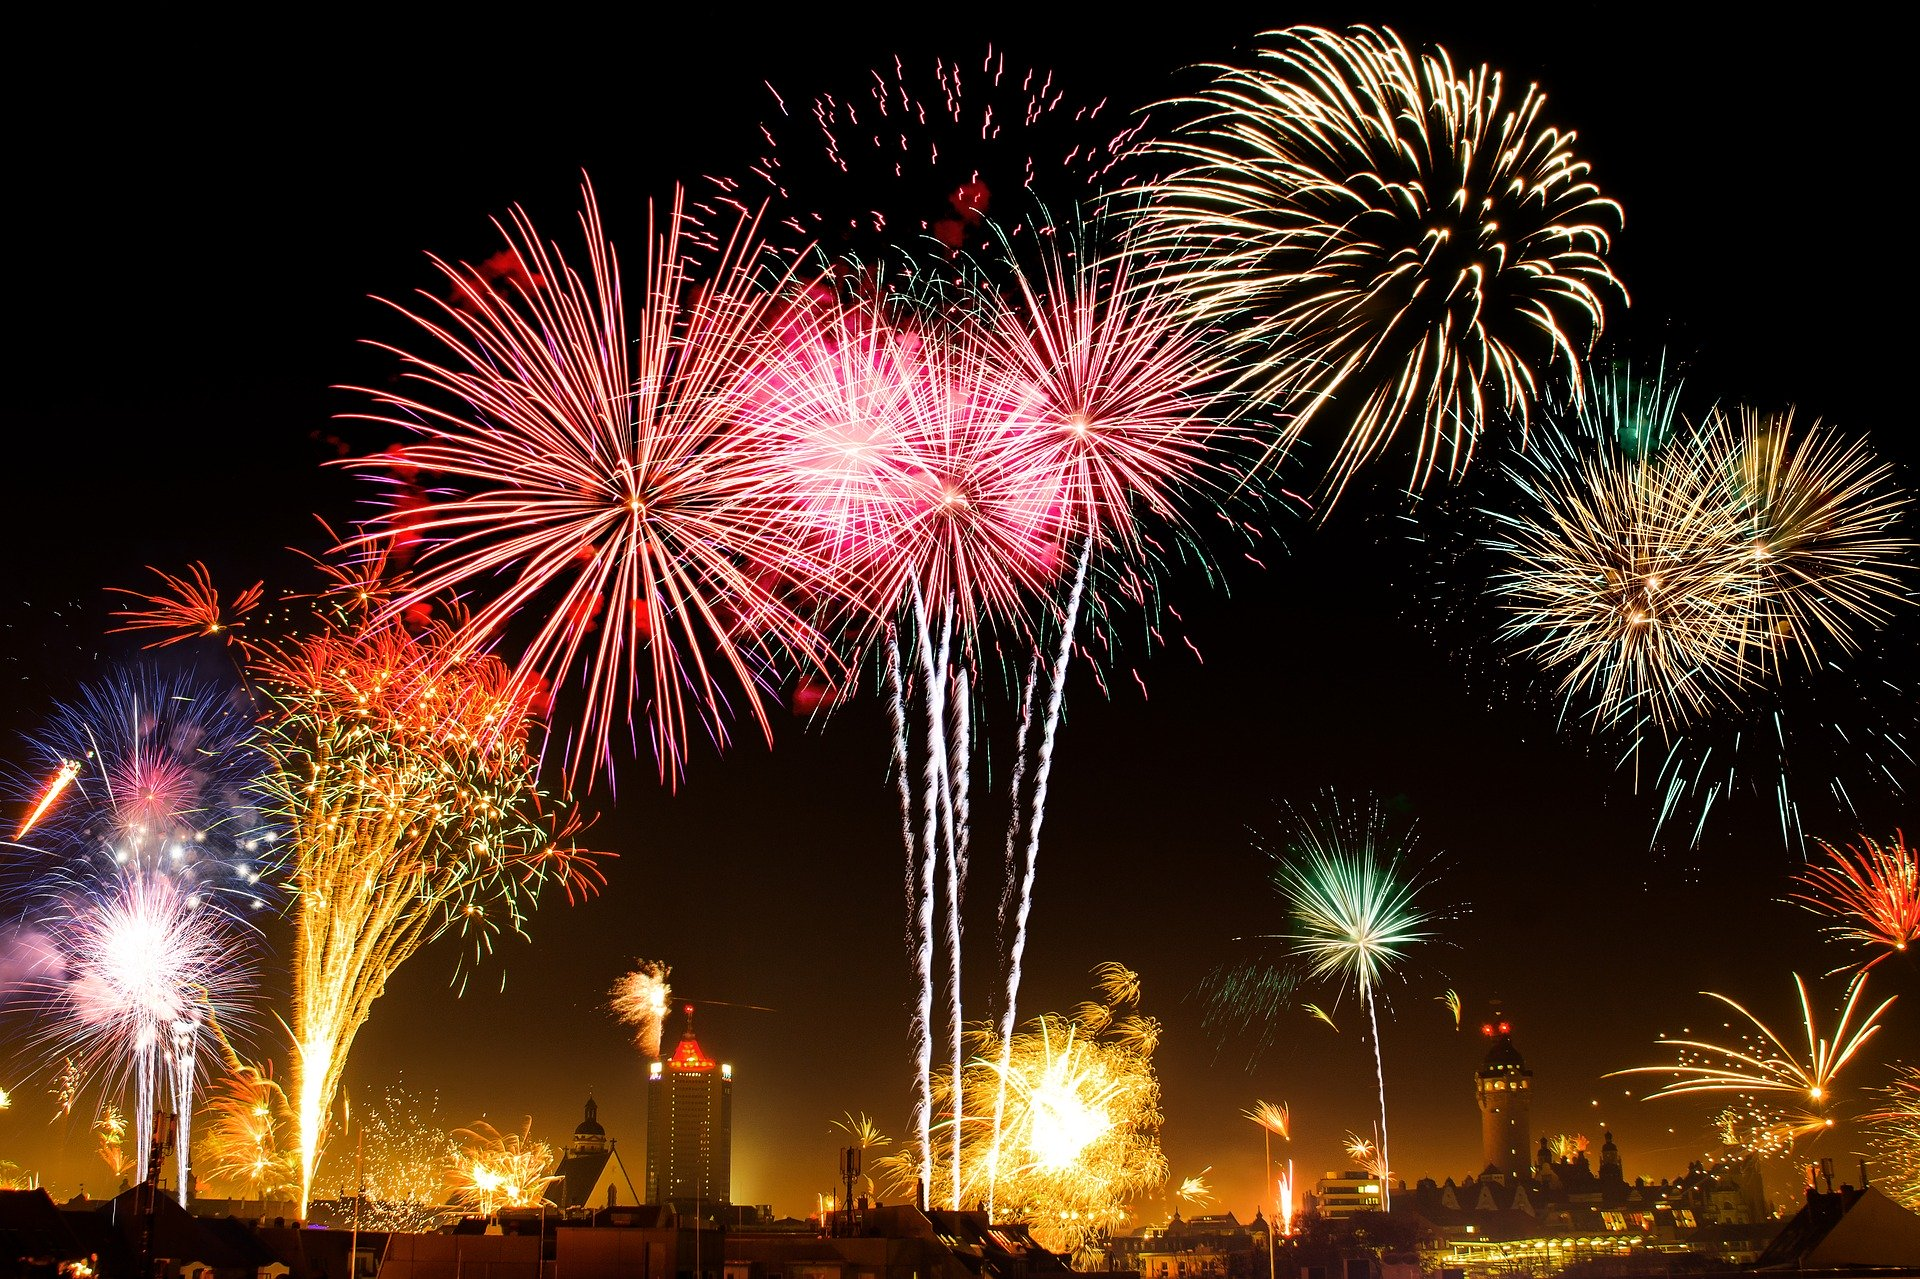 Top 10 Best Party Places To Celebrate New Year S Eve 2020 In Thailand The Foodie Travels In 2020 New Years Eve Fireworks Happy New Year Pictures New Year Wishes